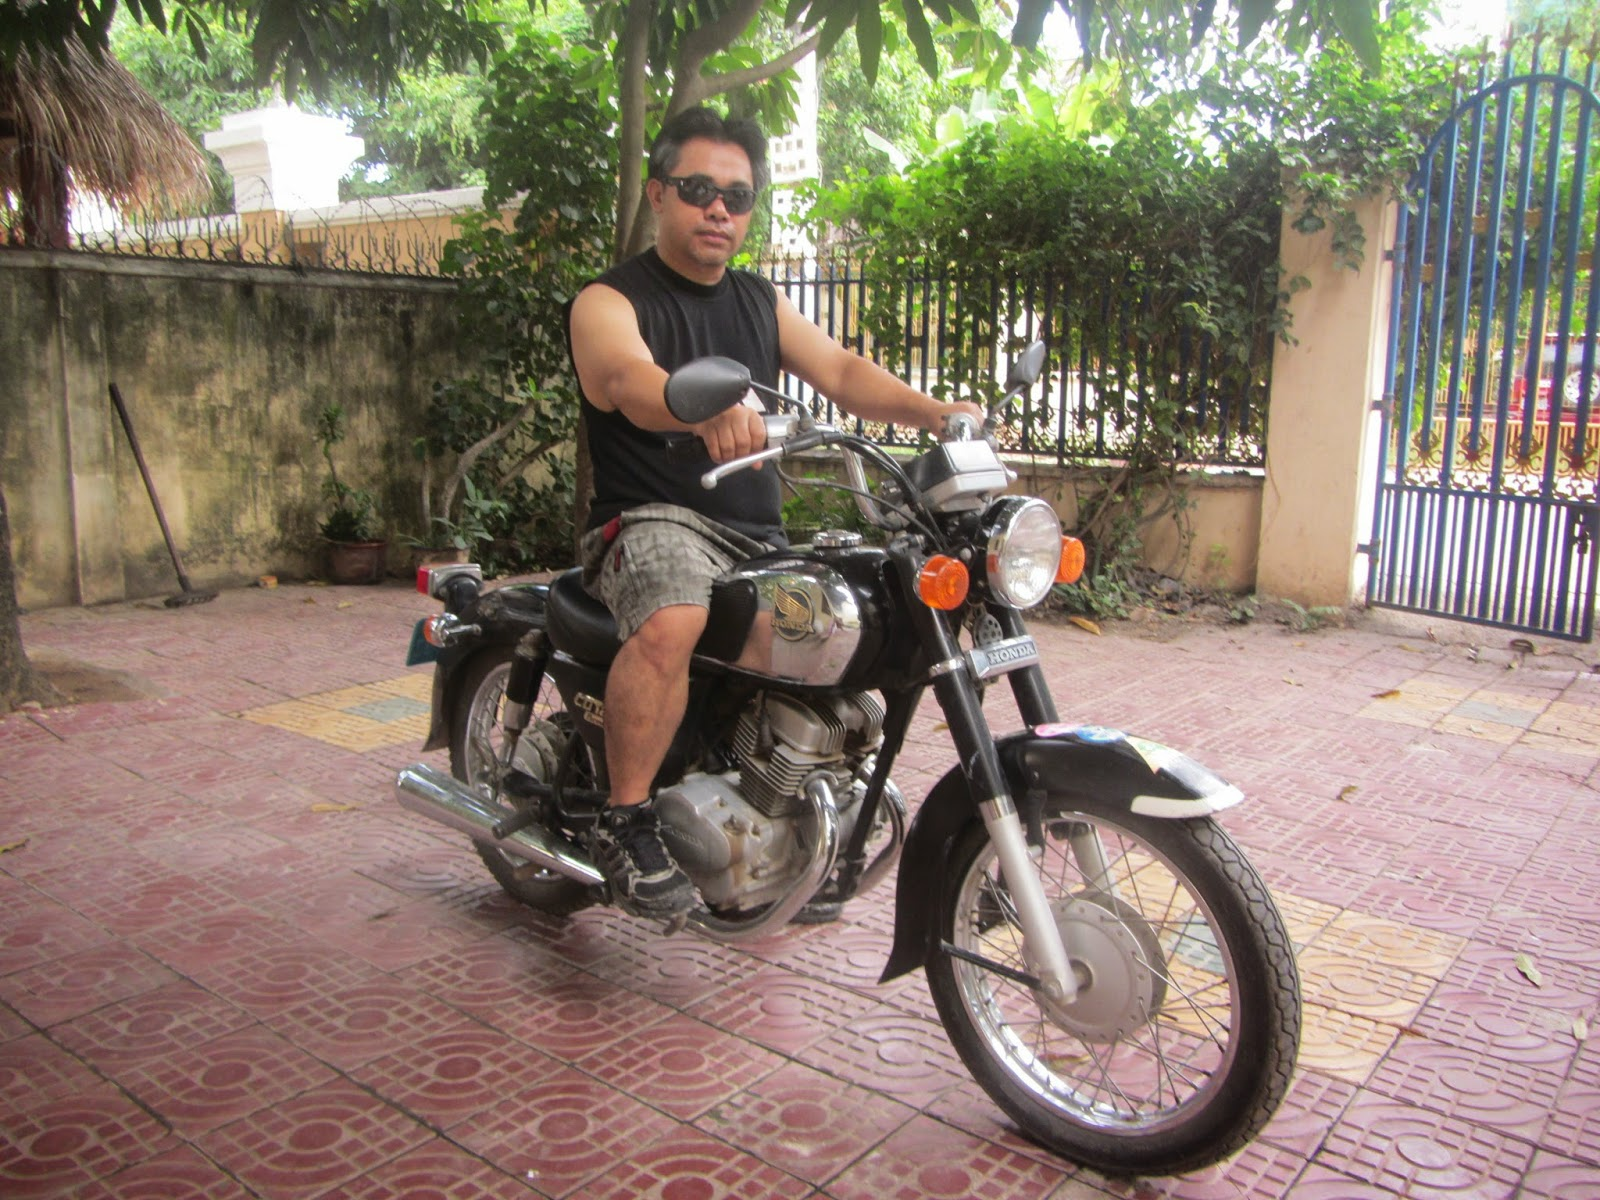 cambodia crosscurrent news (ccn): motorcycle for sale honda cd125